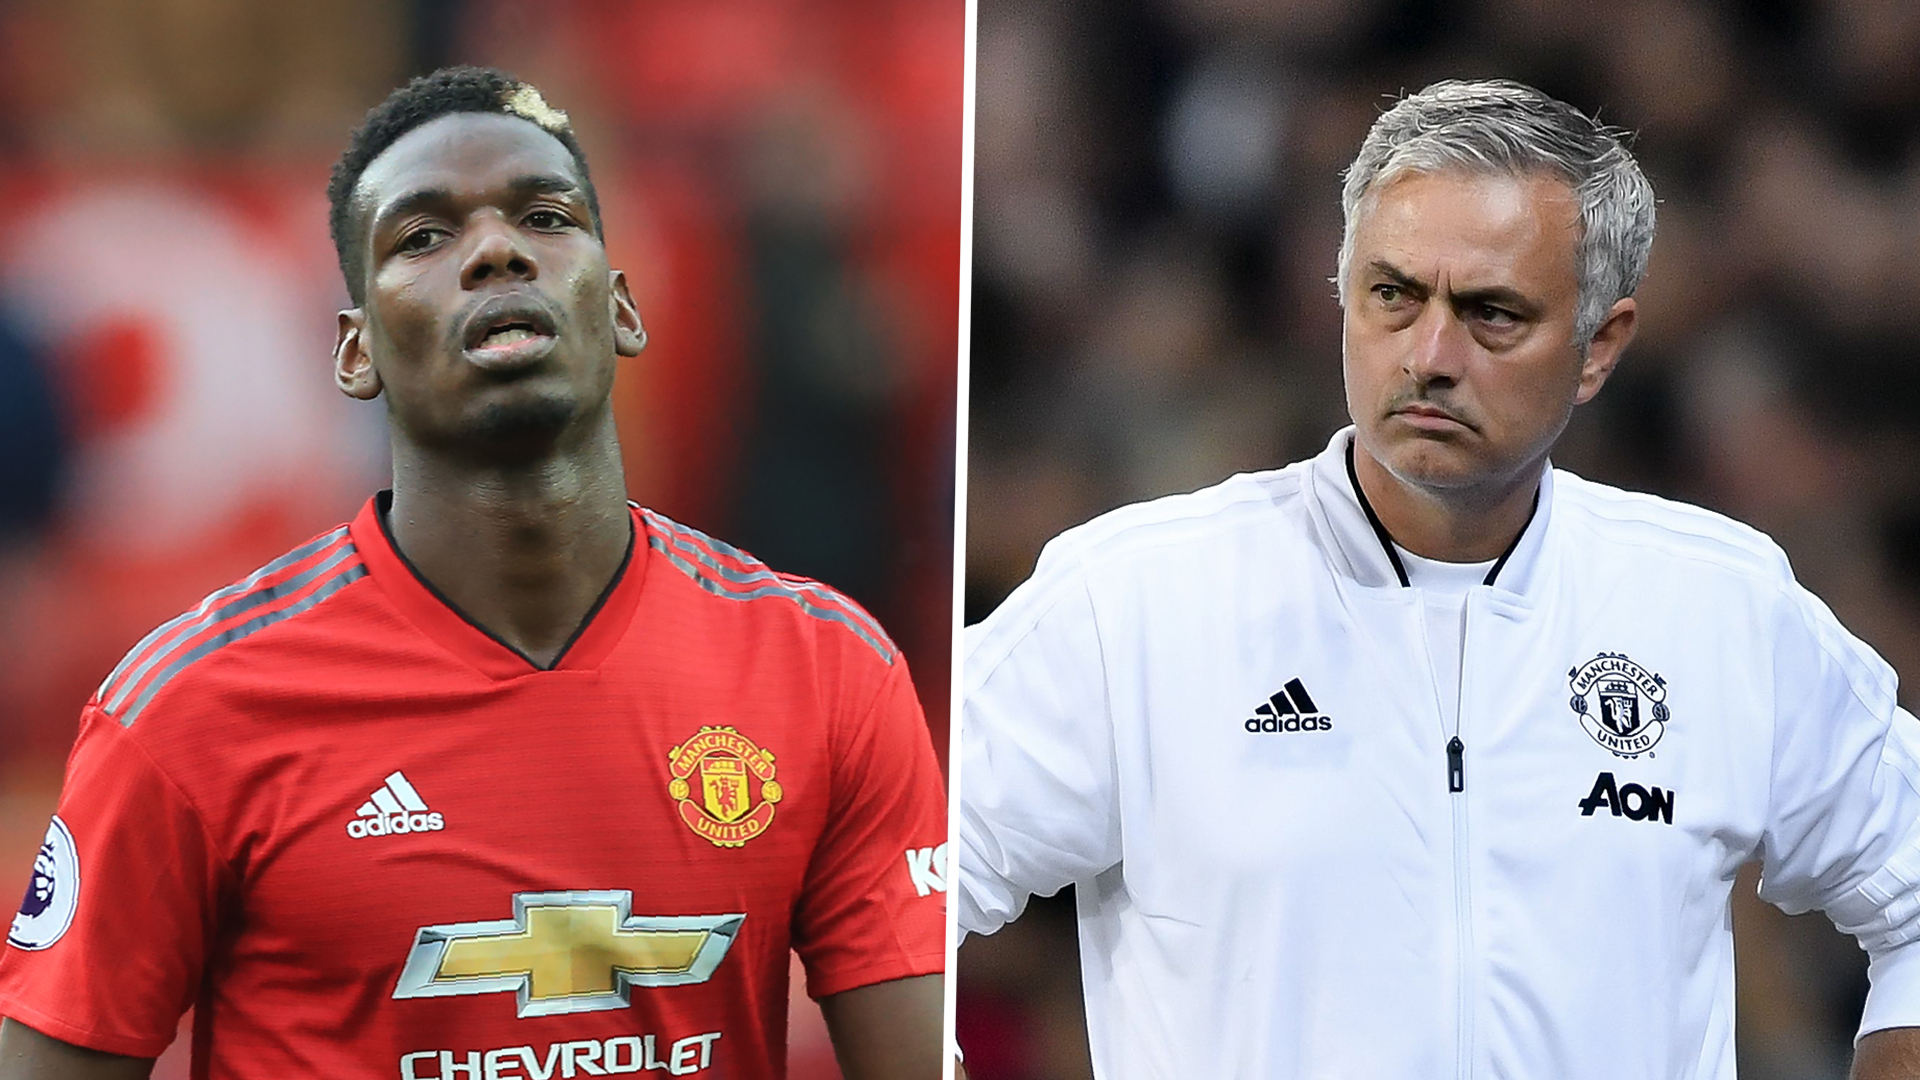 Paul Pogba and Jose Mourinho have an argument at the Carrington grounds